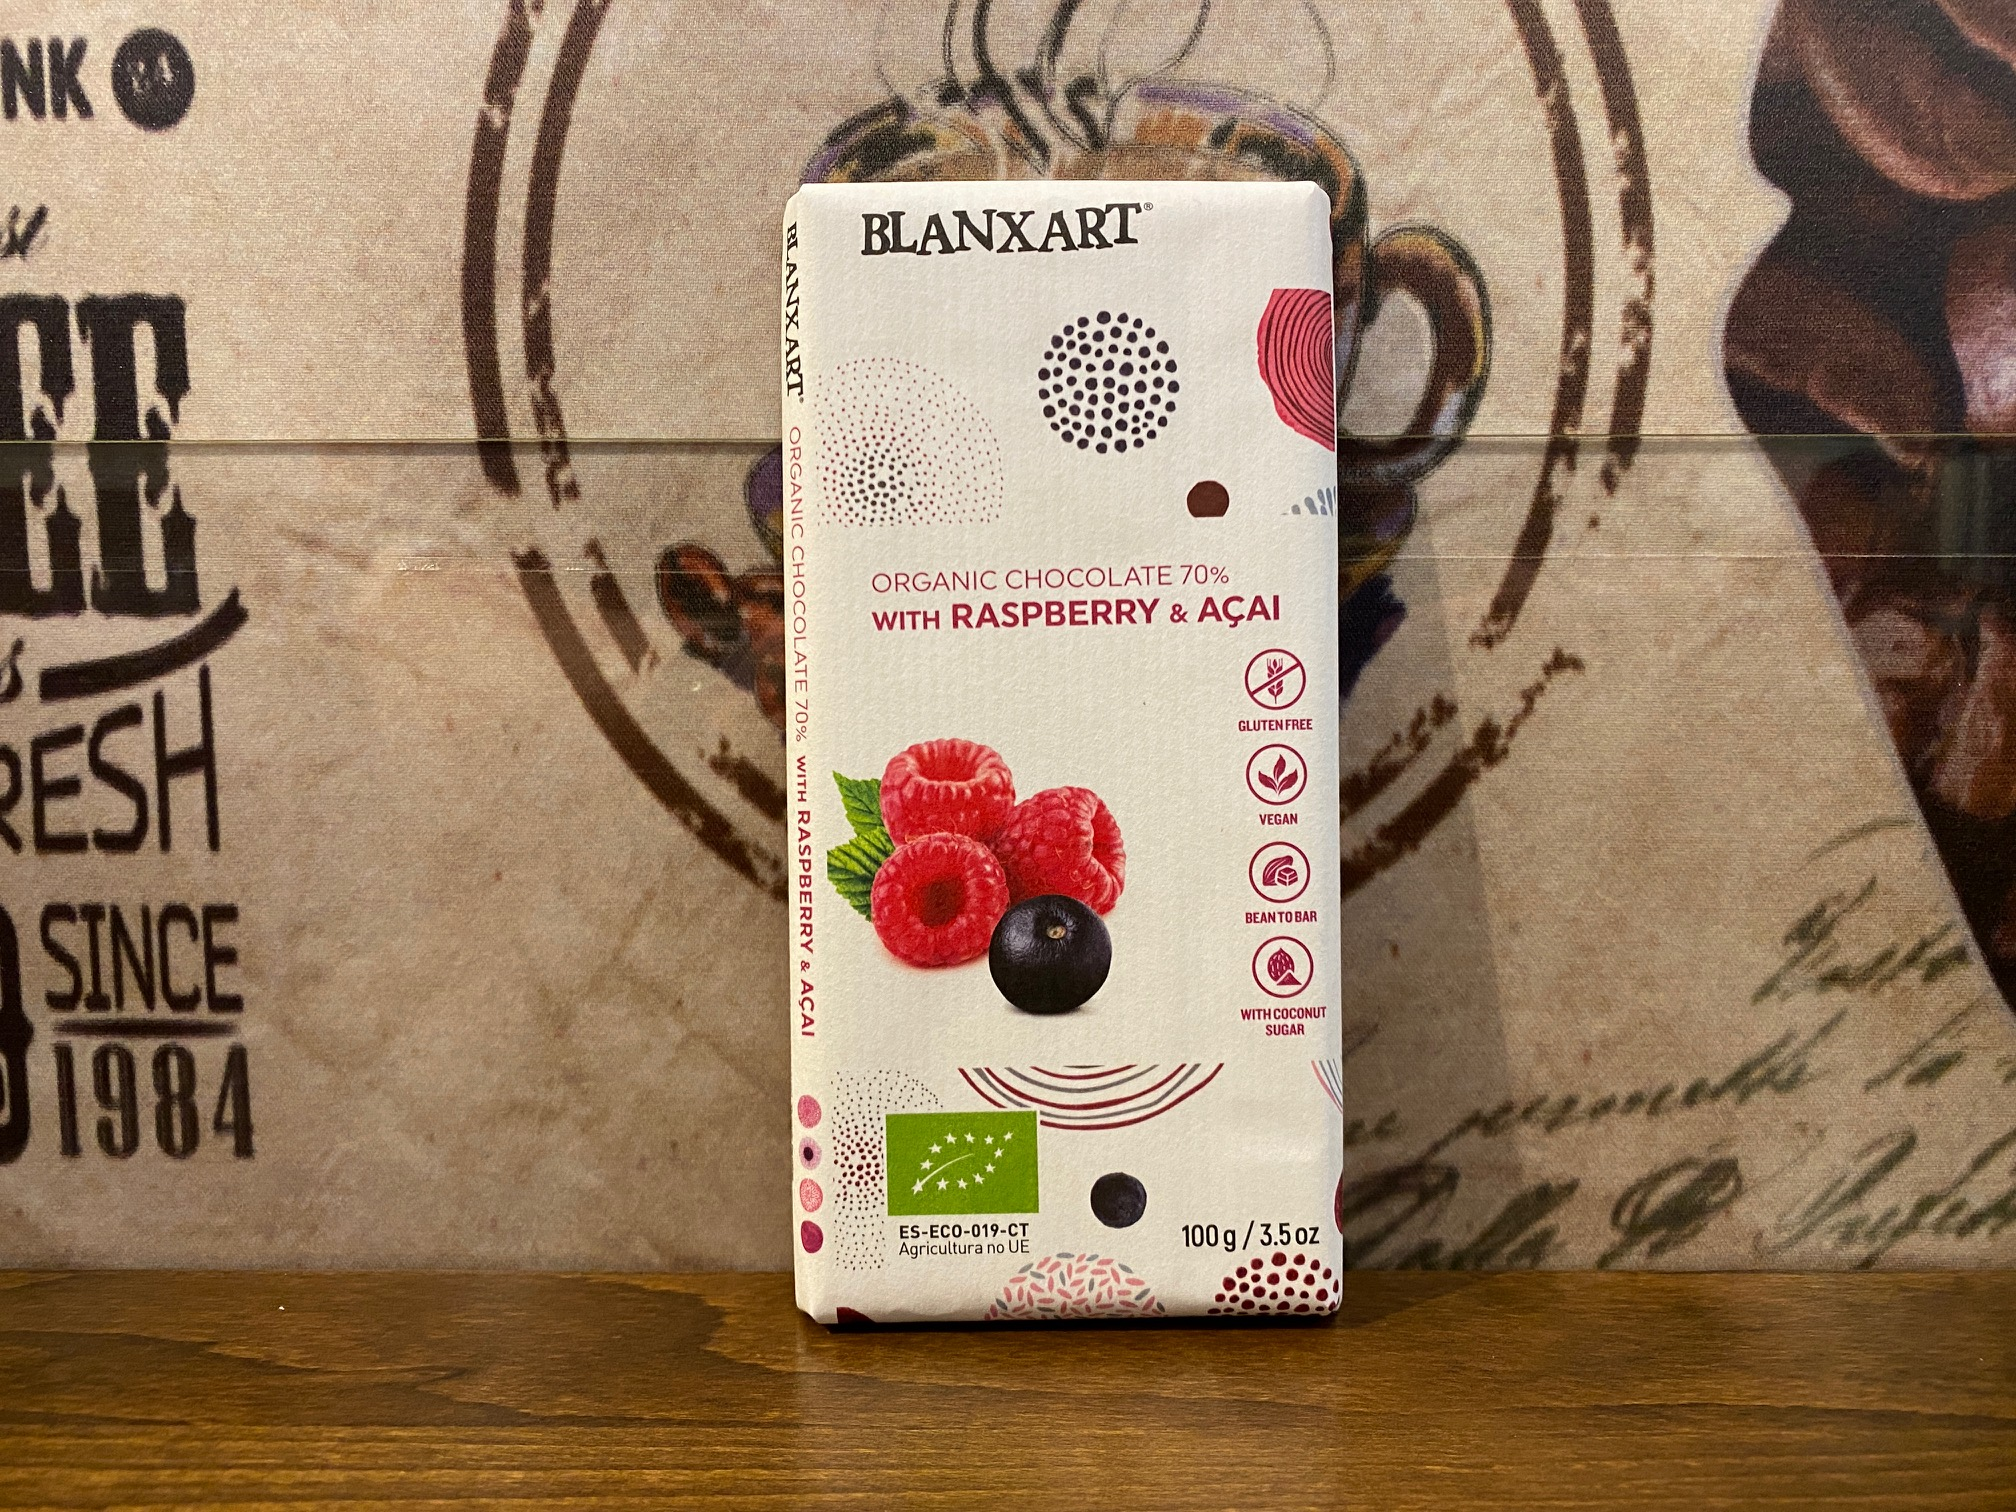 BLANXART Organic chocolate 70 % with Raspberry & Acai